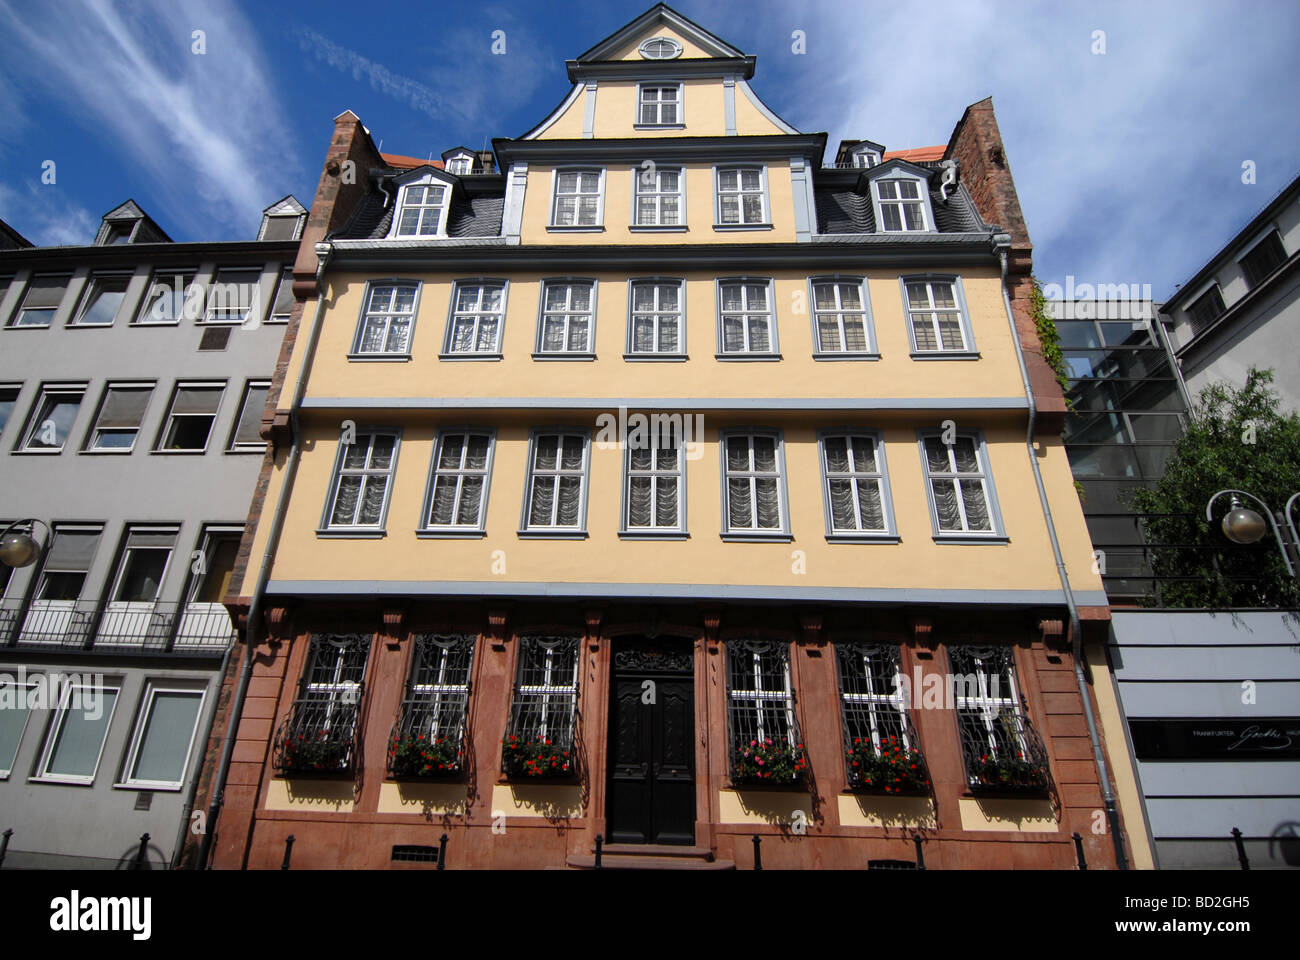 goethe haus frankfurt am main germany stock photo royalty free image 25257825 alamy. Black Bedroom Furniture Sets. Home Design Ideas